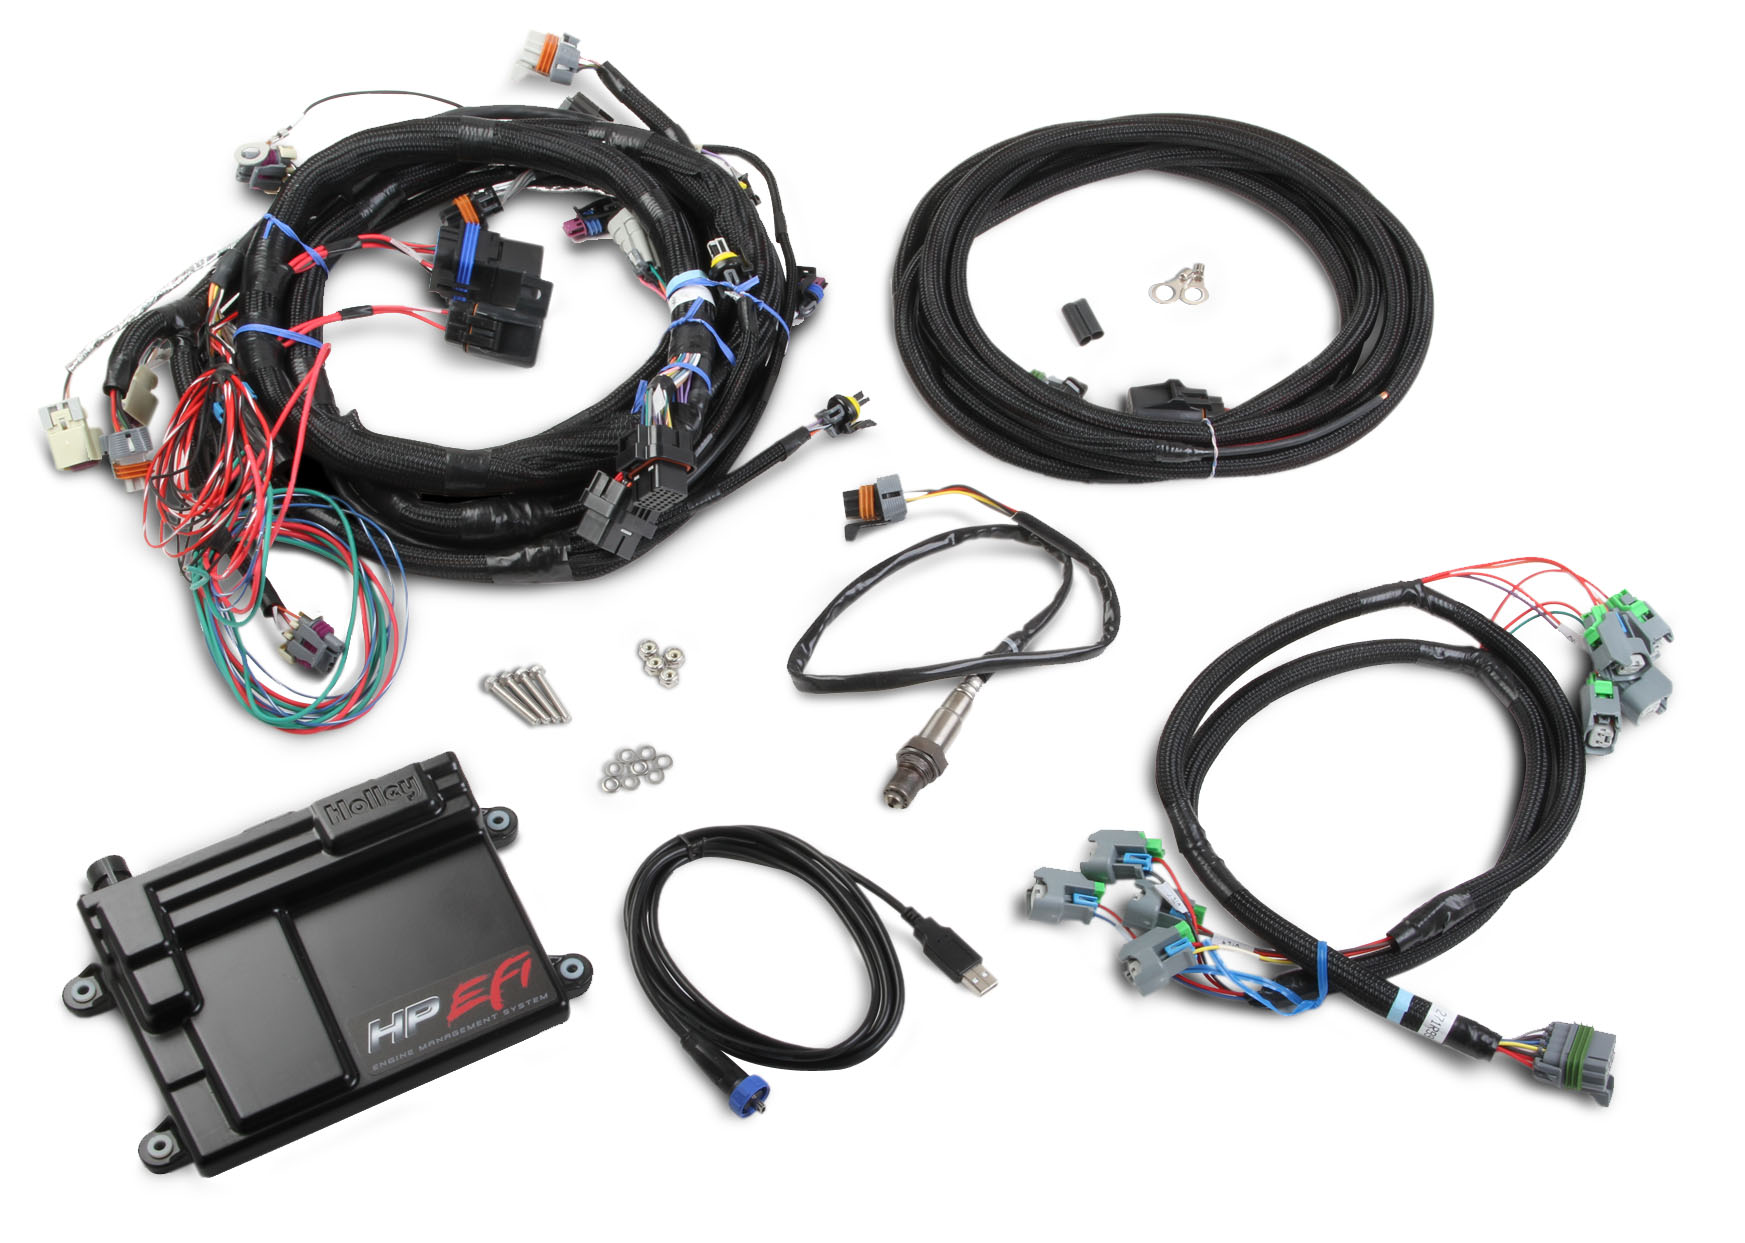 Holley Ls1 Wiring Harness : Standalone ls wiring harness with ecu sikky